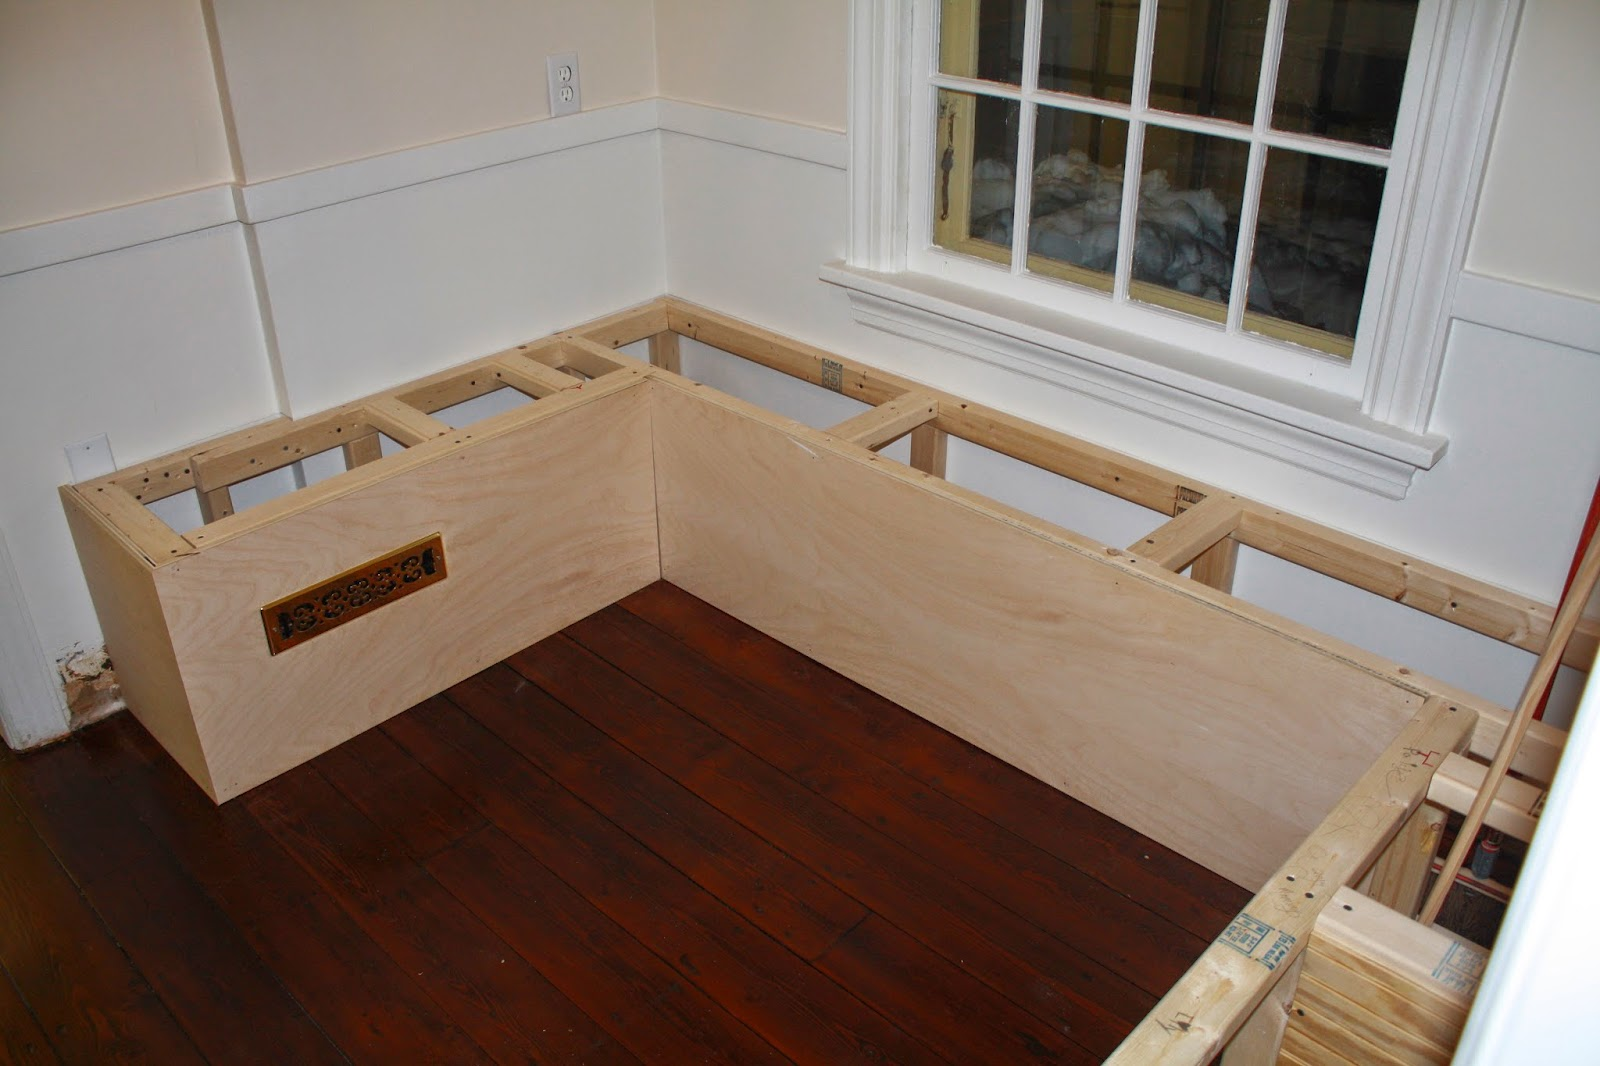 Breakfast Nook Bench Plans | Breakfast Bench Plans